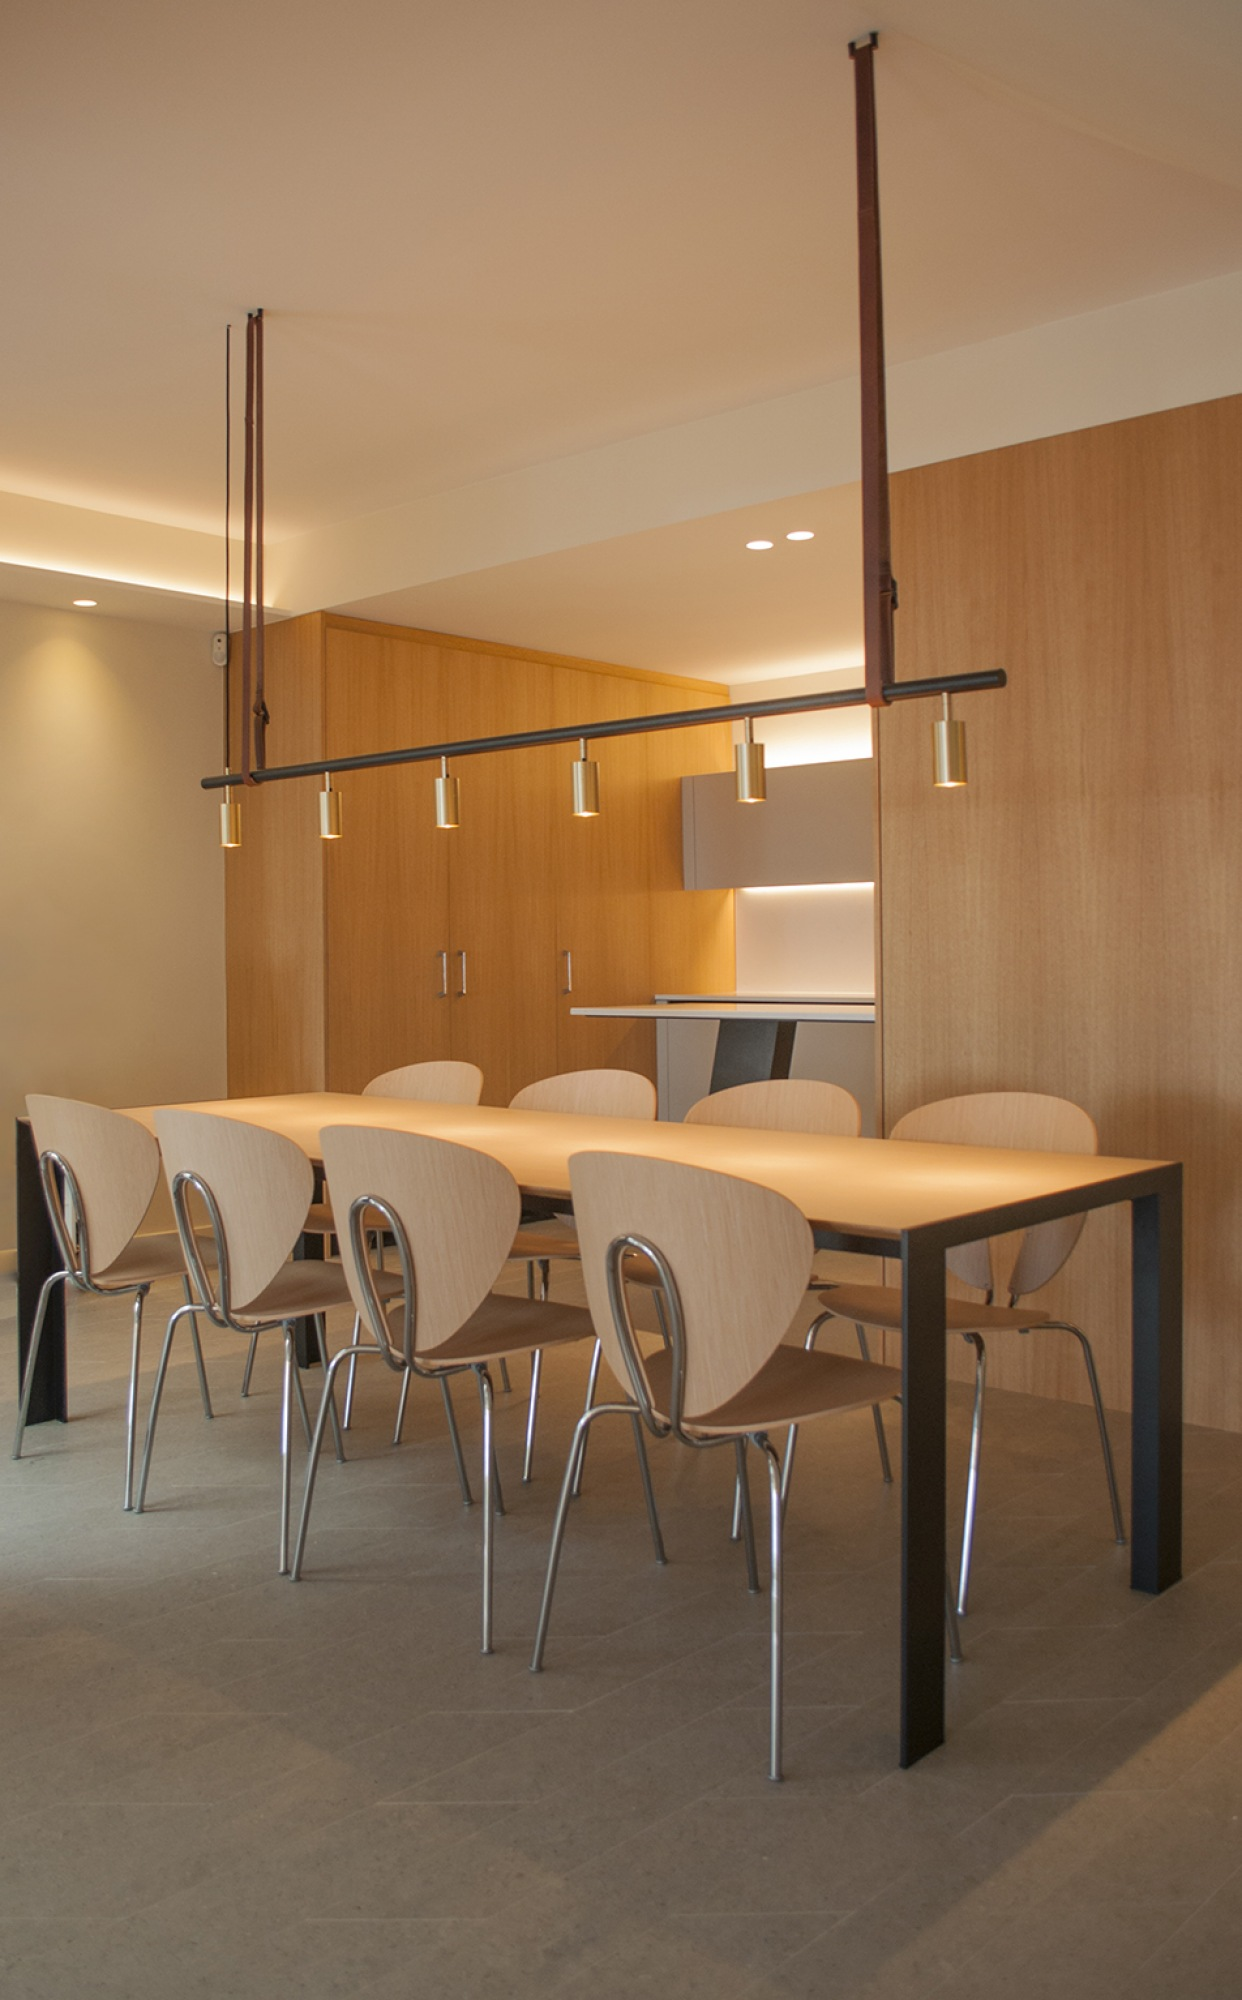 2-architecture-sitges-interior-design-barcelona-dining-modern-lamp-globus-debeb-stua-wood-kitchen-led